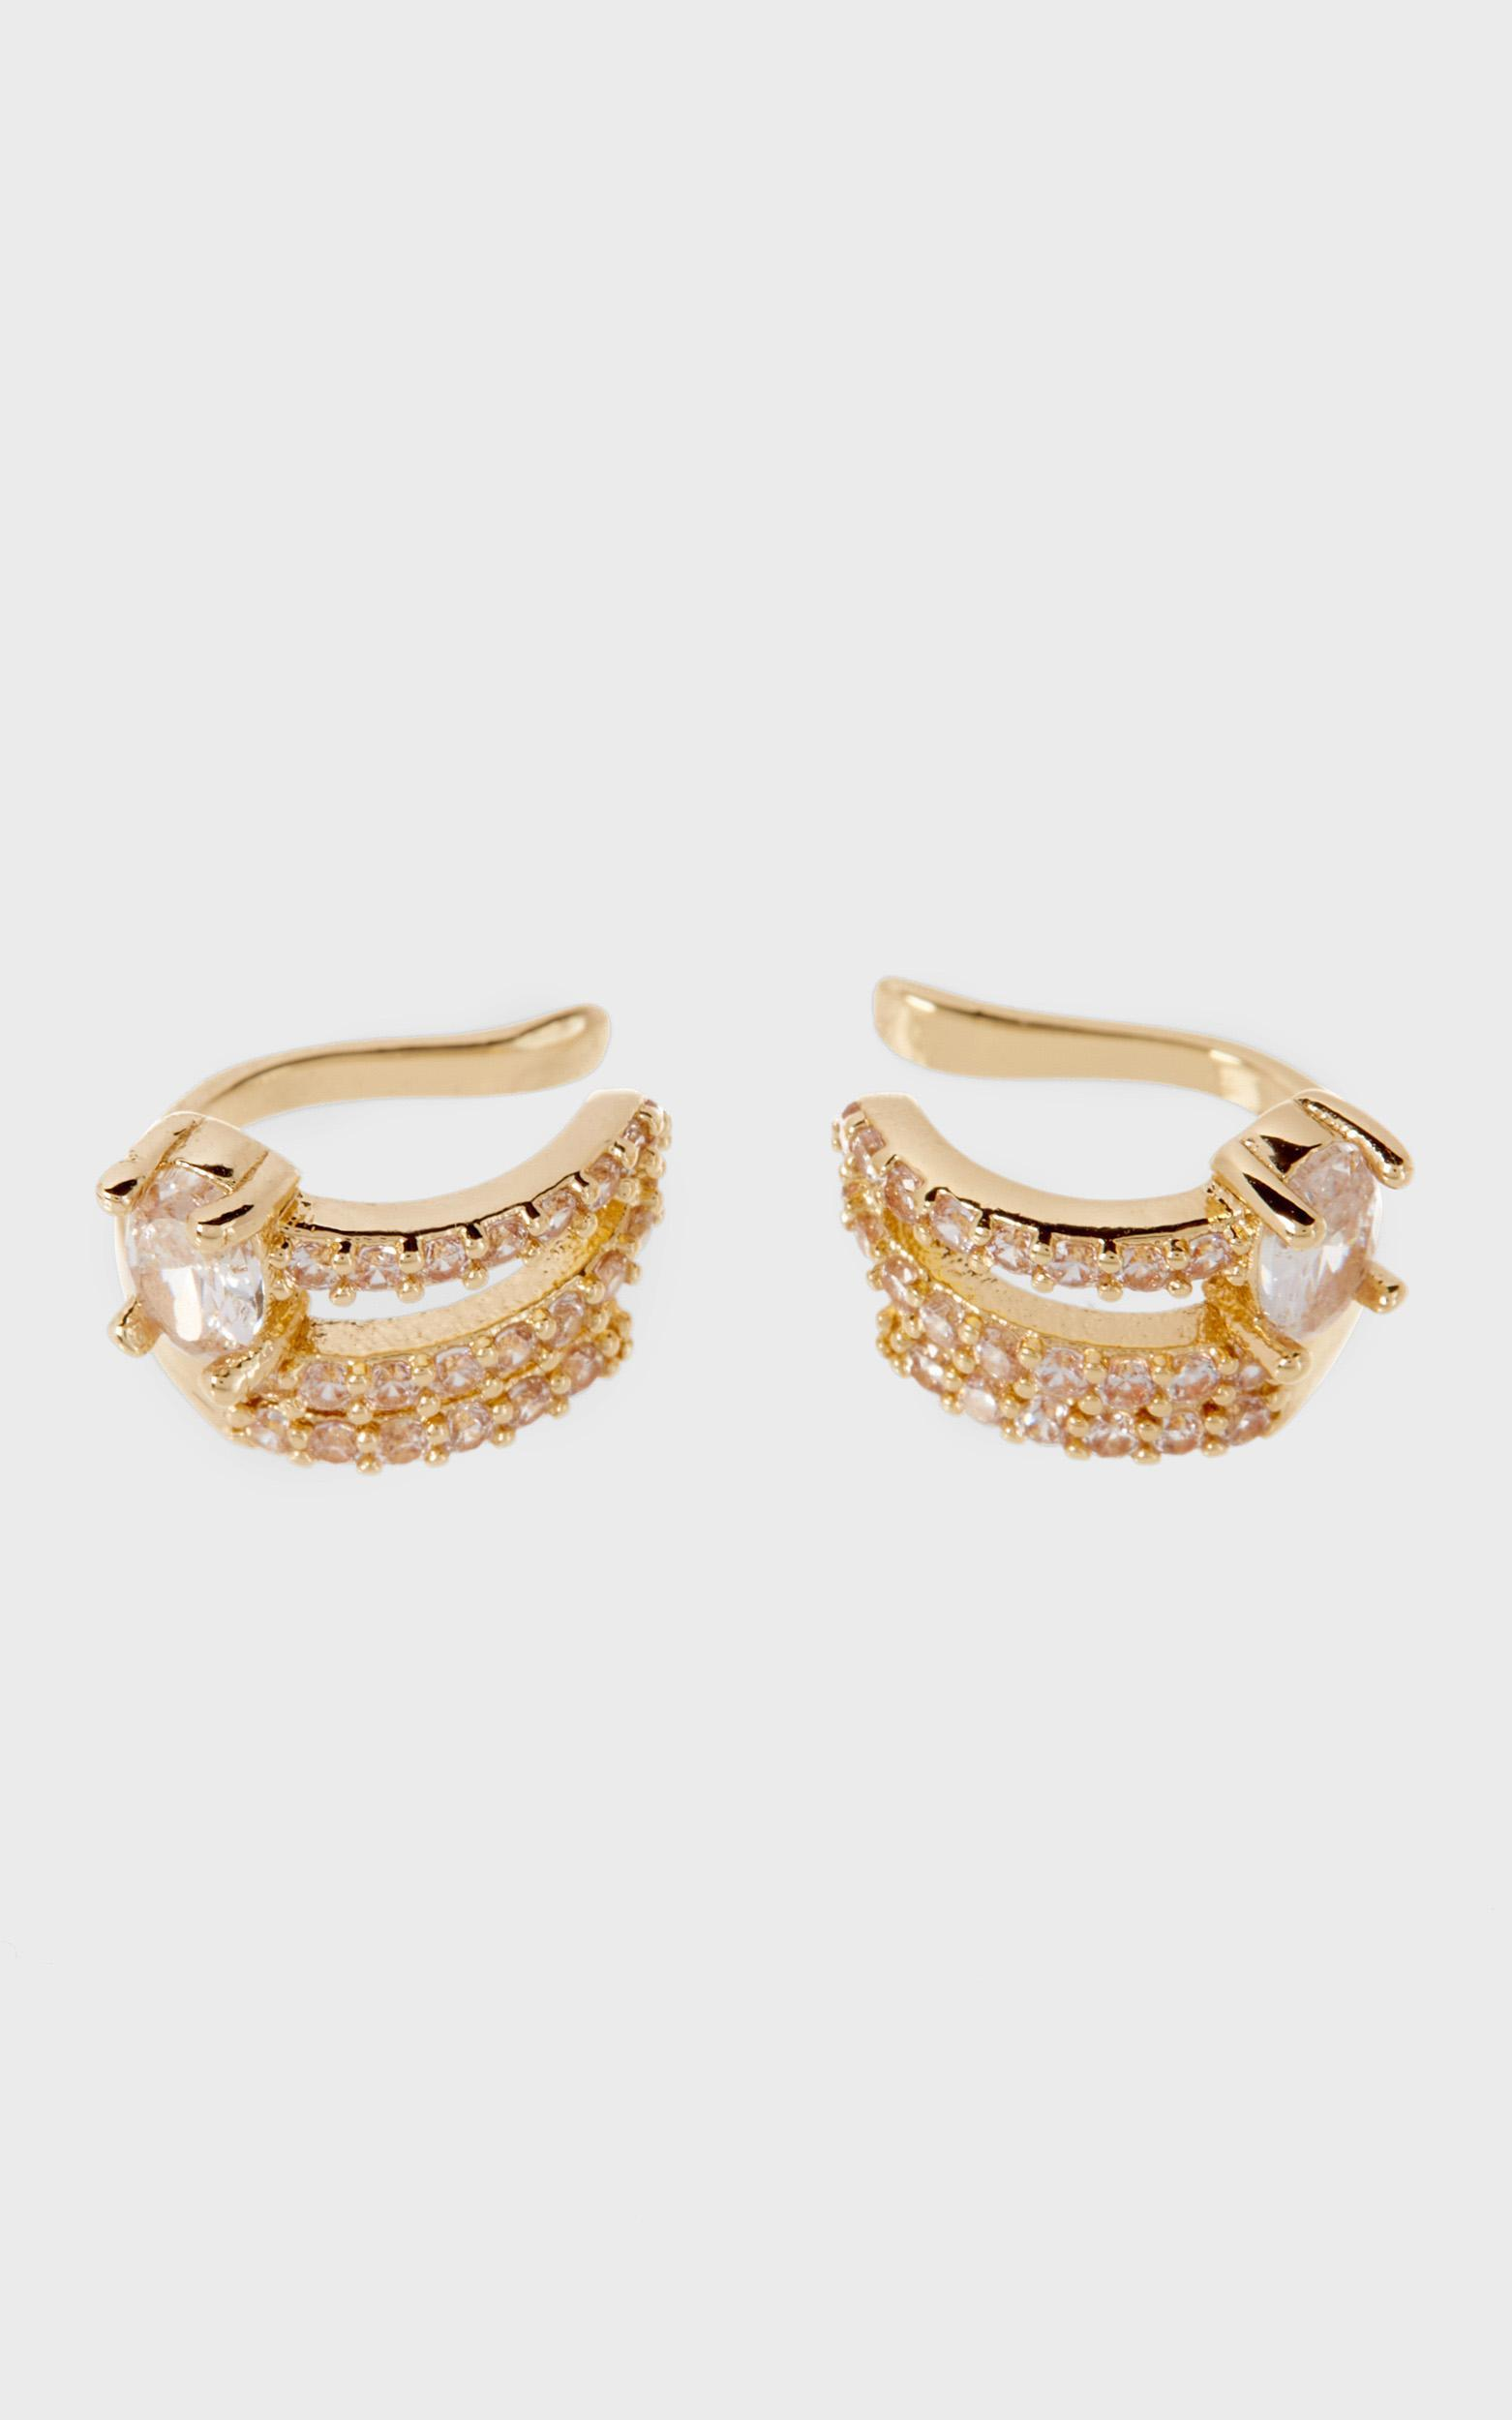 Luv Aj - The Ballier Ear Cuff in Gold, , hi-res image number null